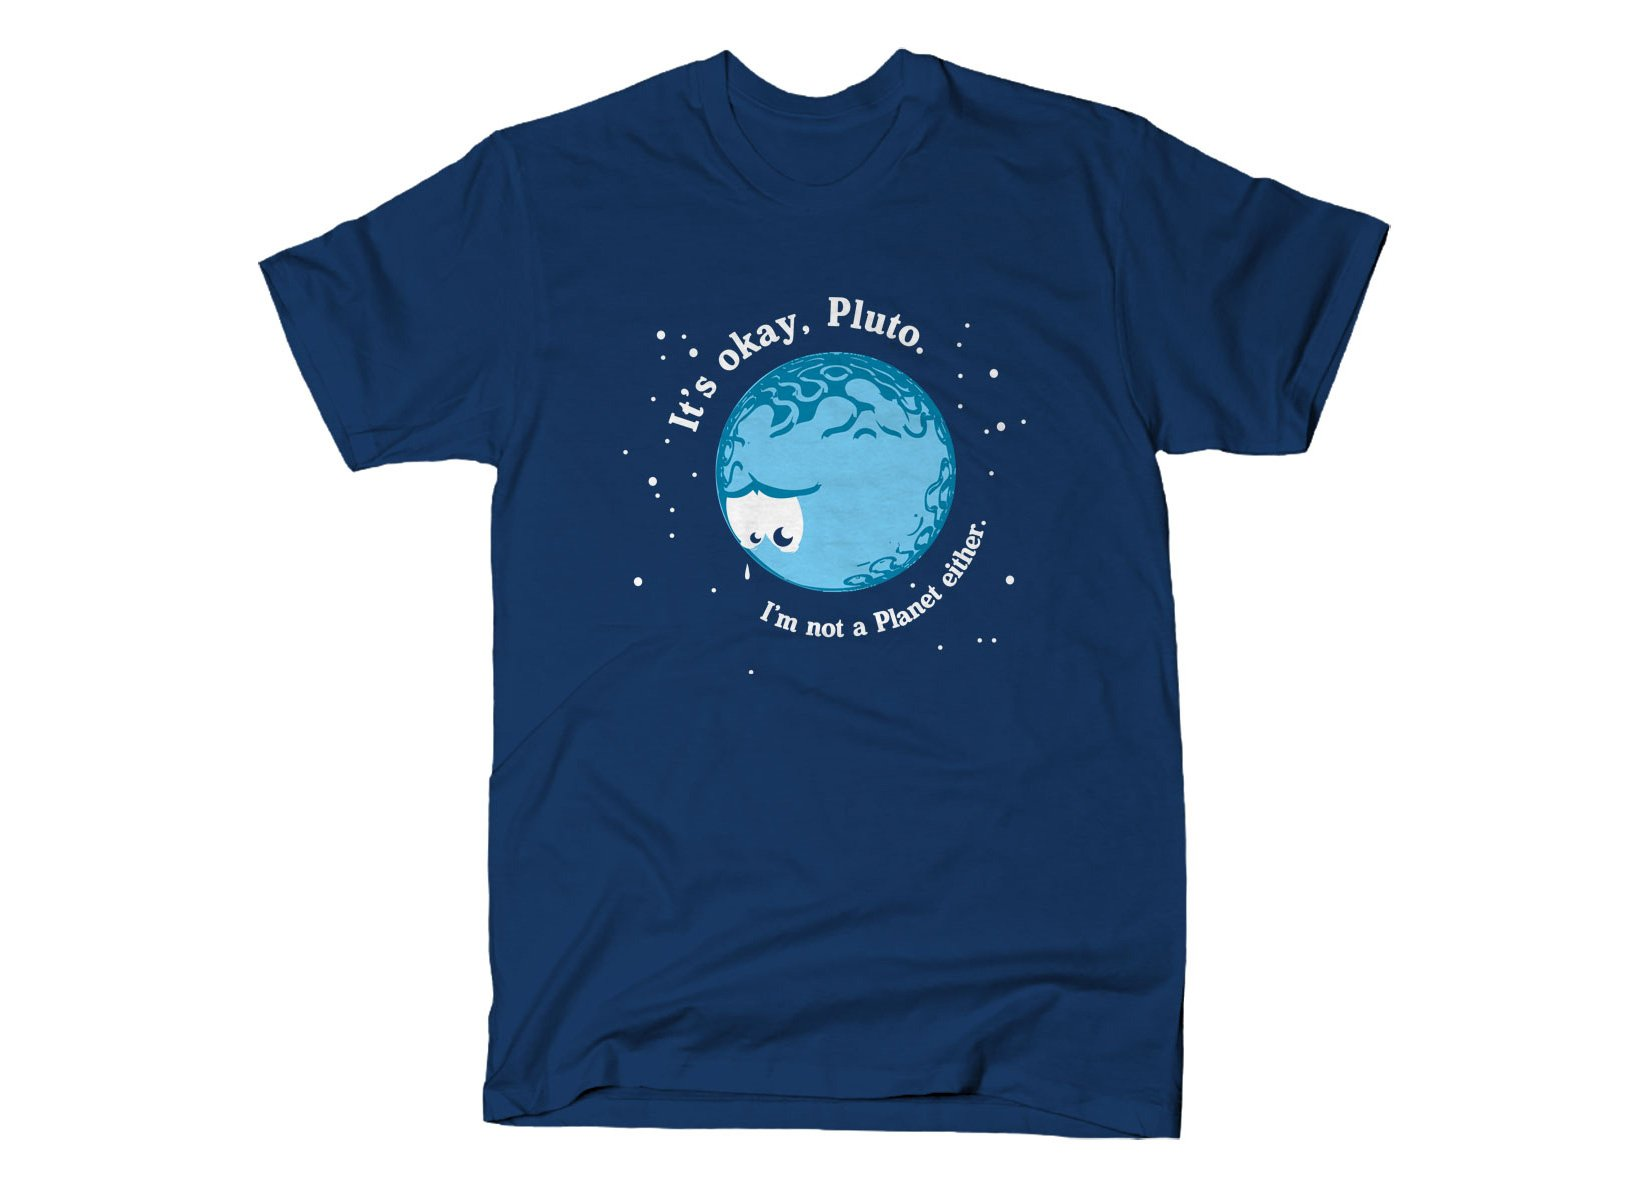 It's Okay Pluto on Mens T-Shirt